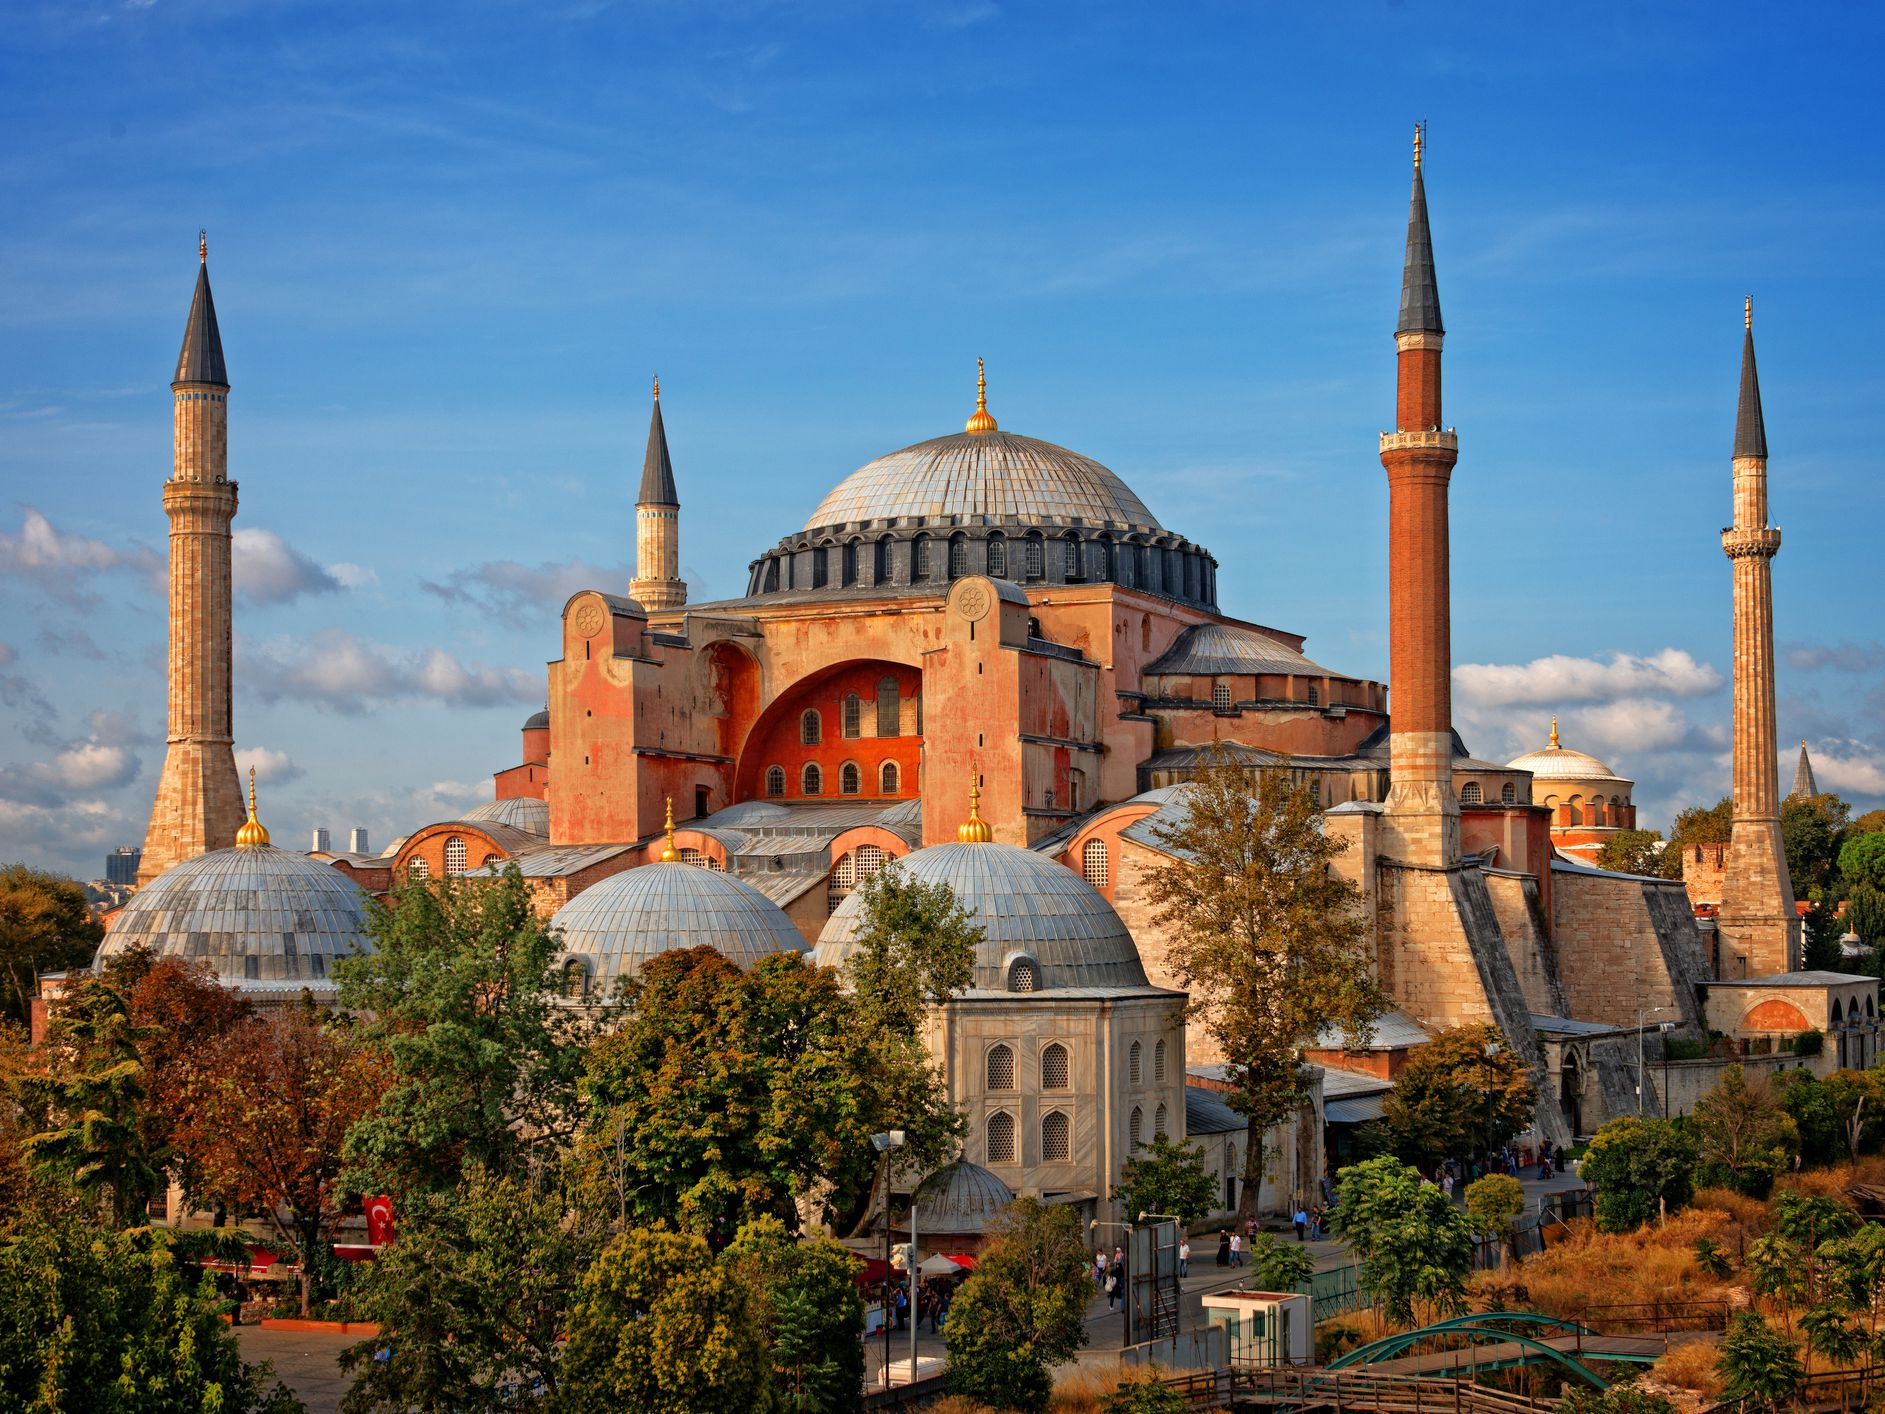 ottoman empire facts interesting facts about the ottoman empire fun facts about the ottoman empire ottoman facts important facts about the ottoman empire